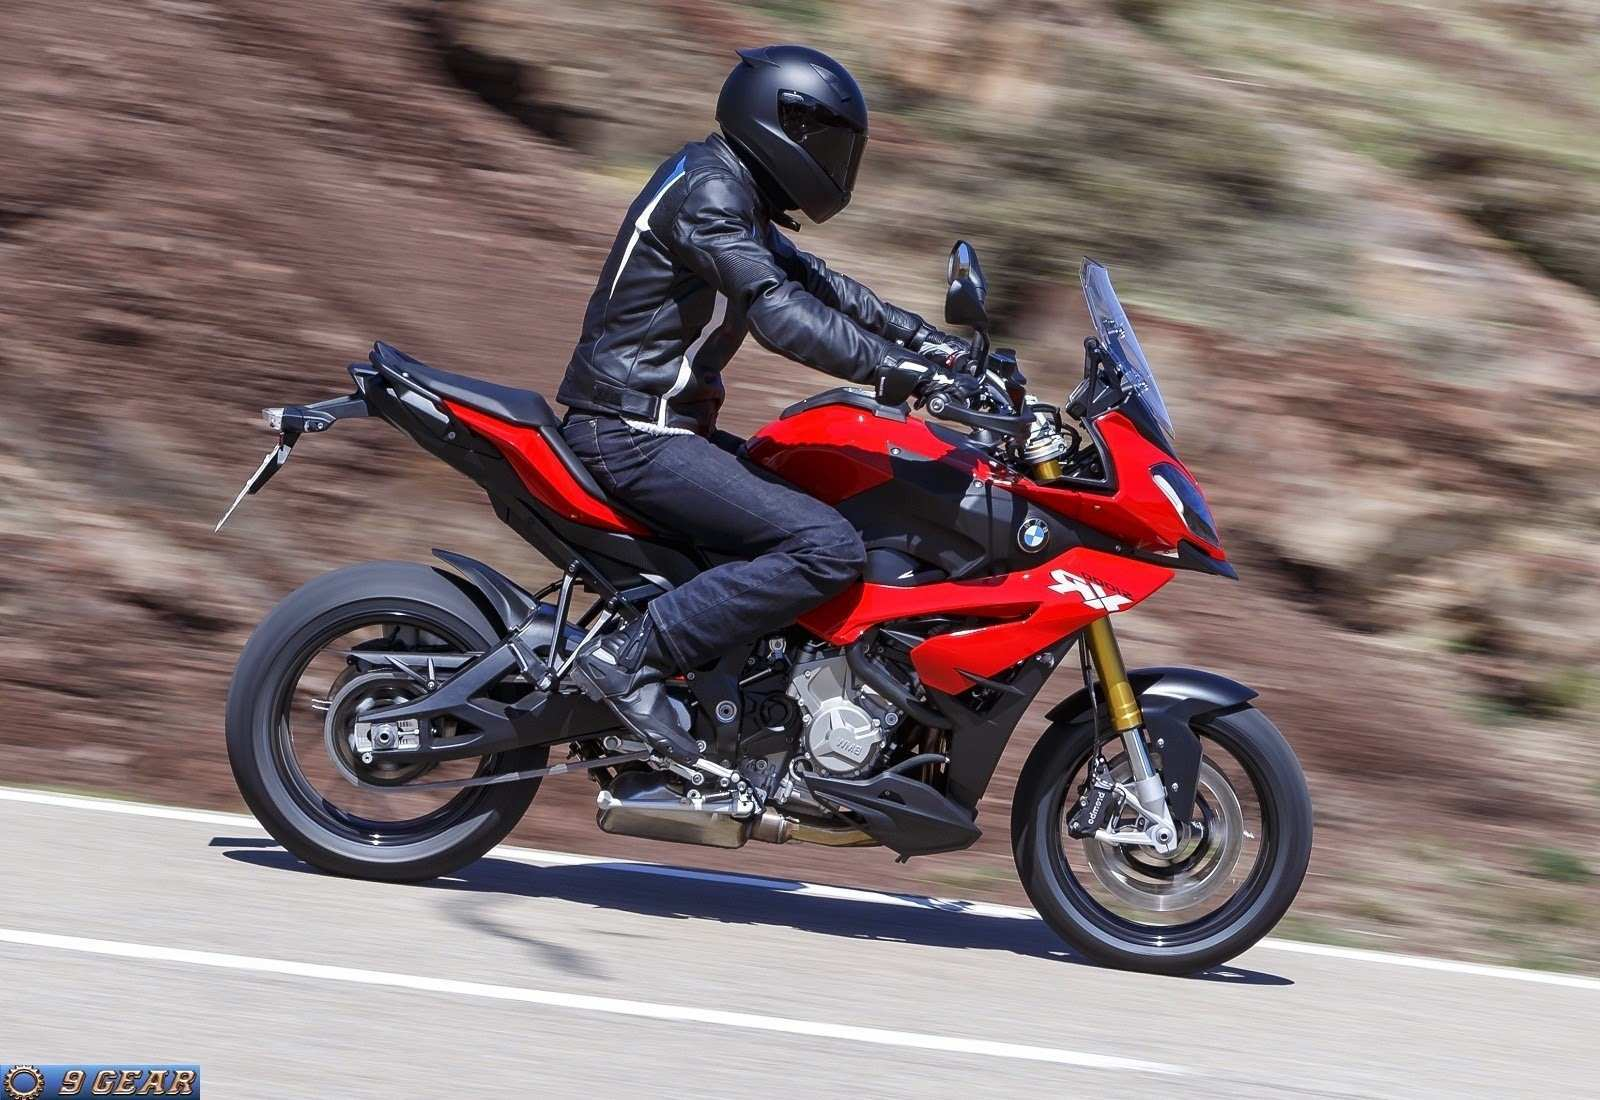 57 Concept of Best Bmw S1000Xr 2019 Release Date Price And Review Model with Best Bmw S1000Xr 2019 Release Date Price And Review